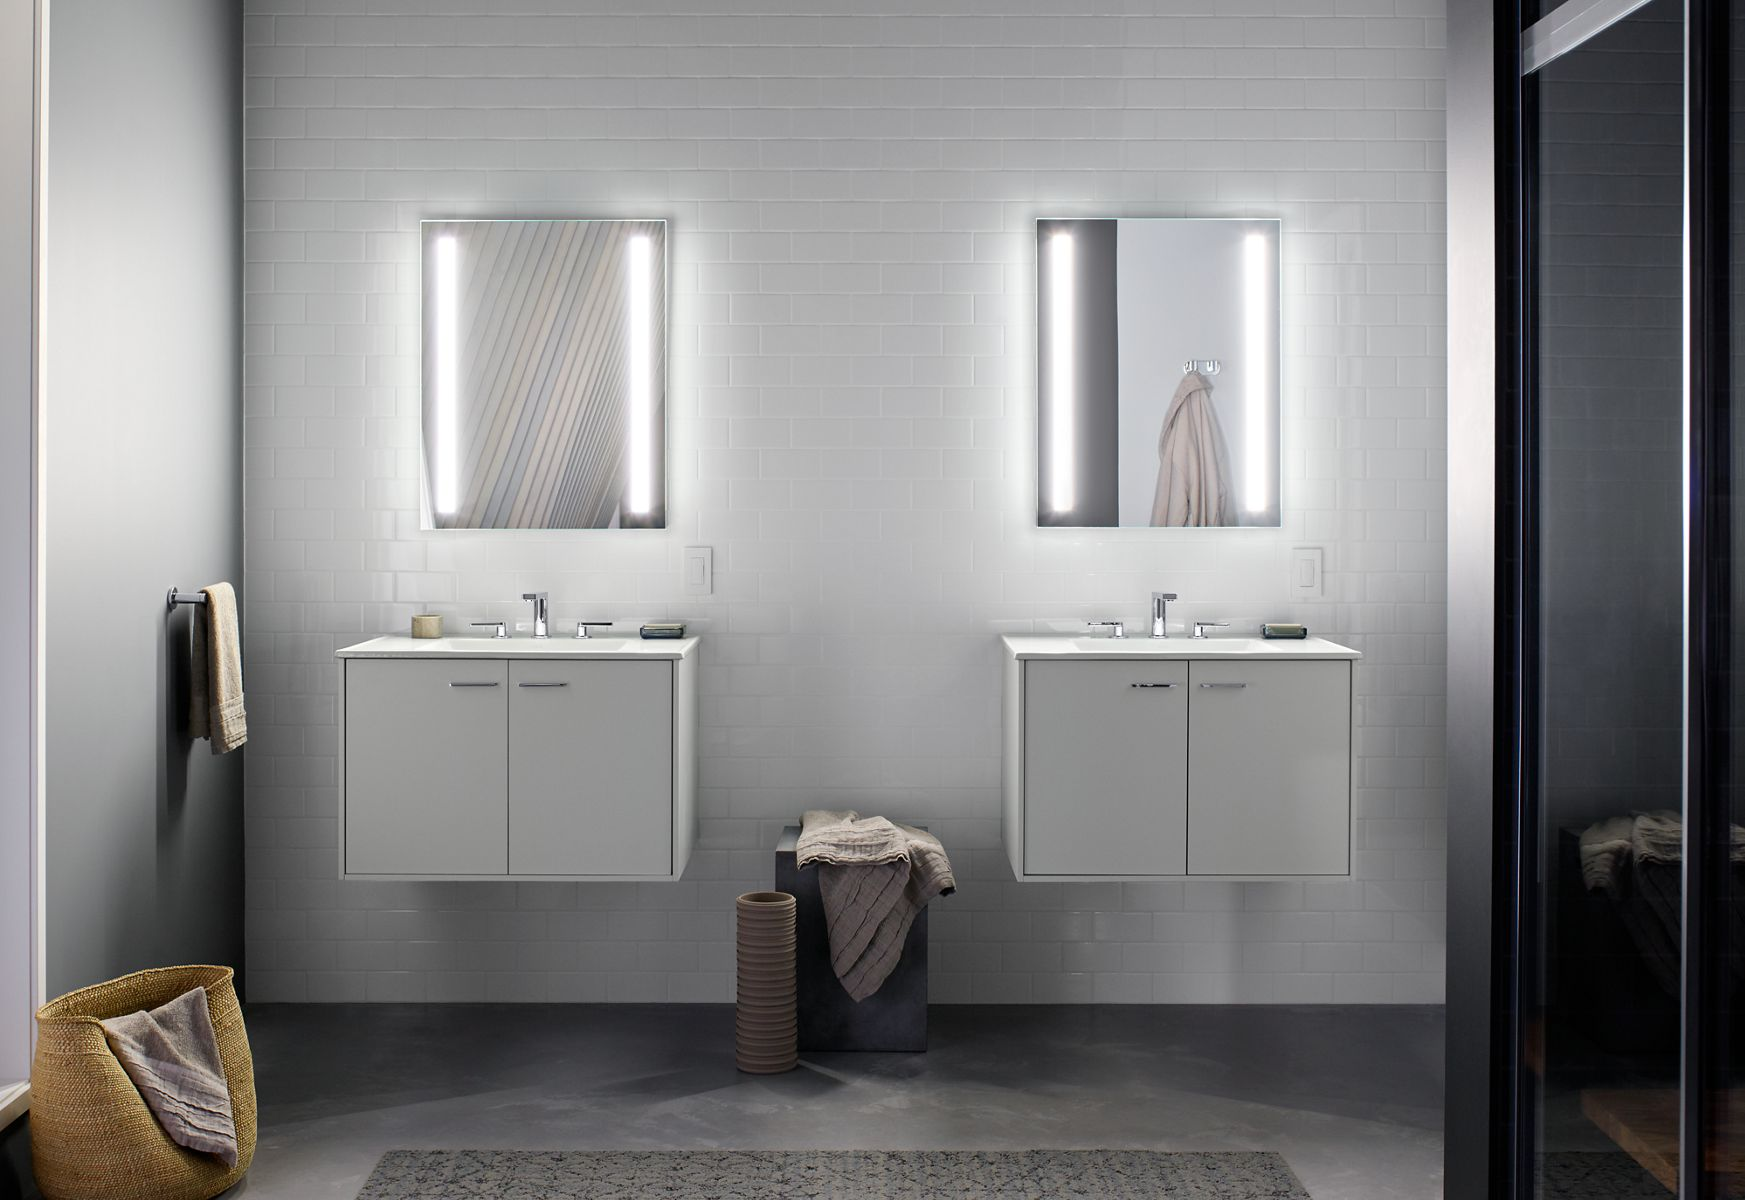 Better Light. & Bathroom Medicine Cabinets Other Furniture u0026 Storage Solution | KOHLER